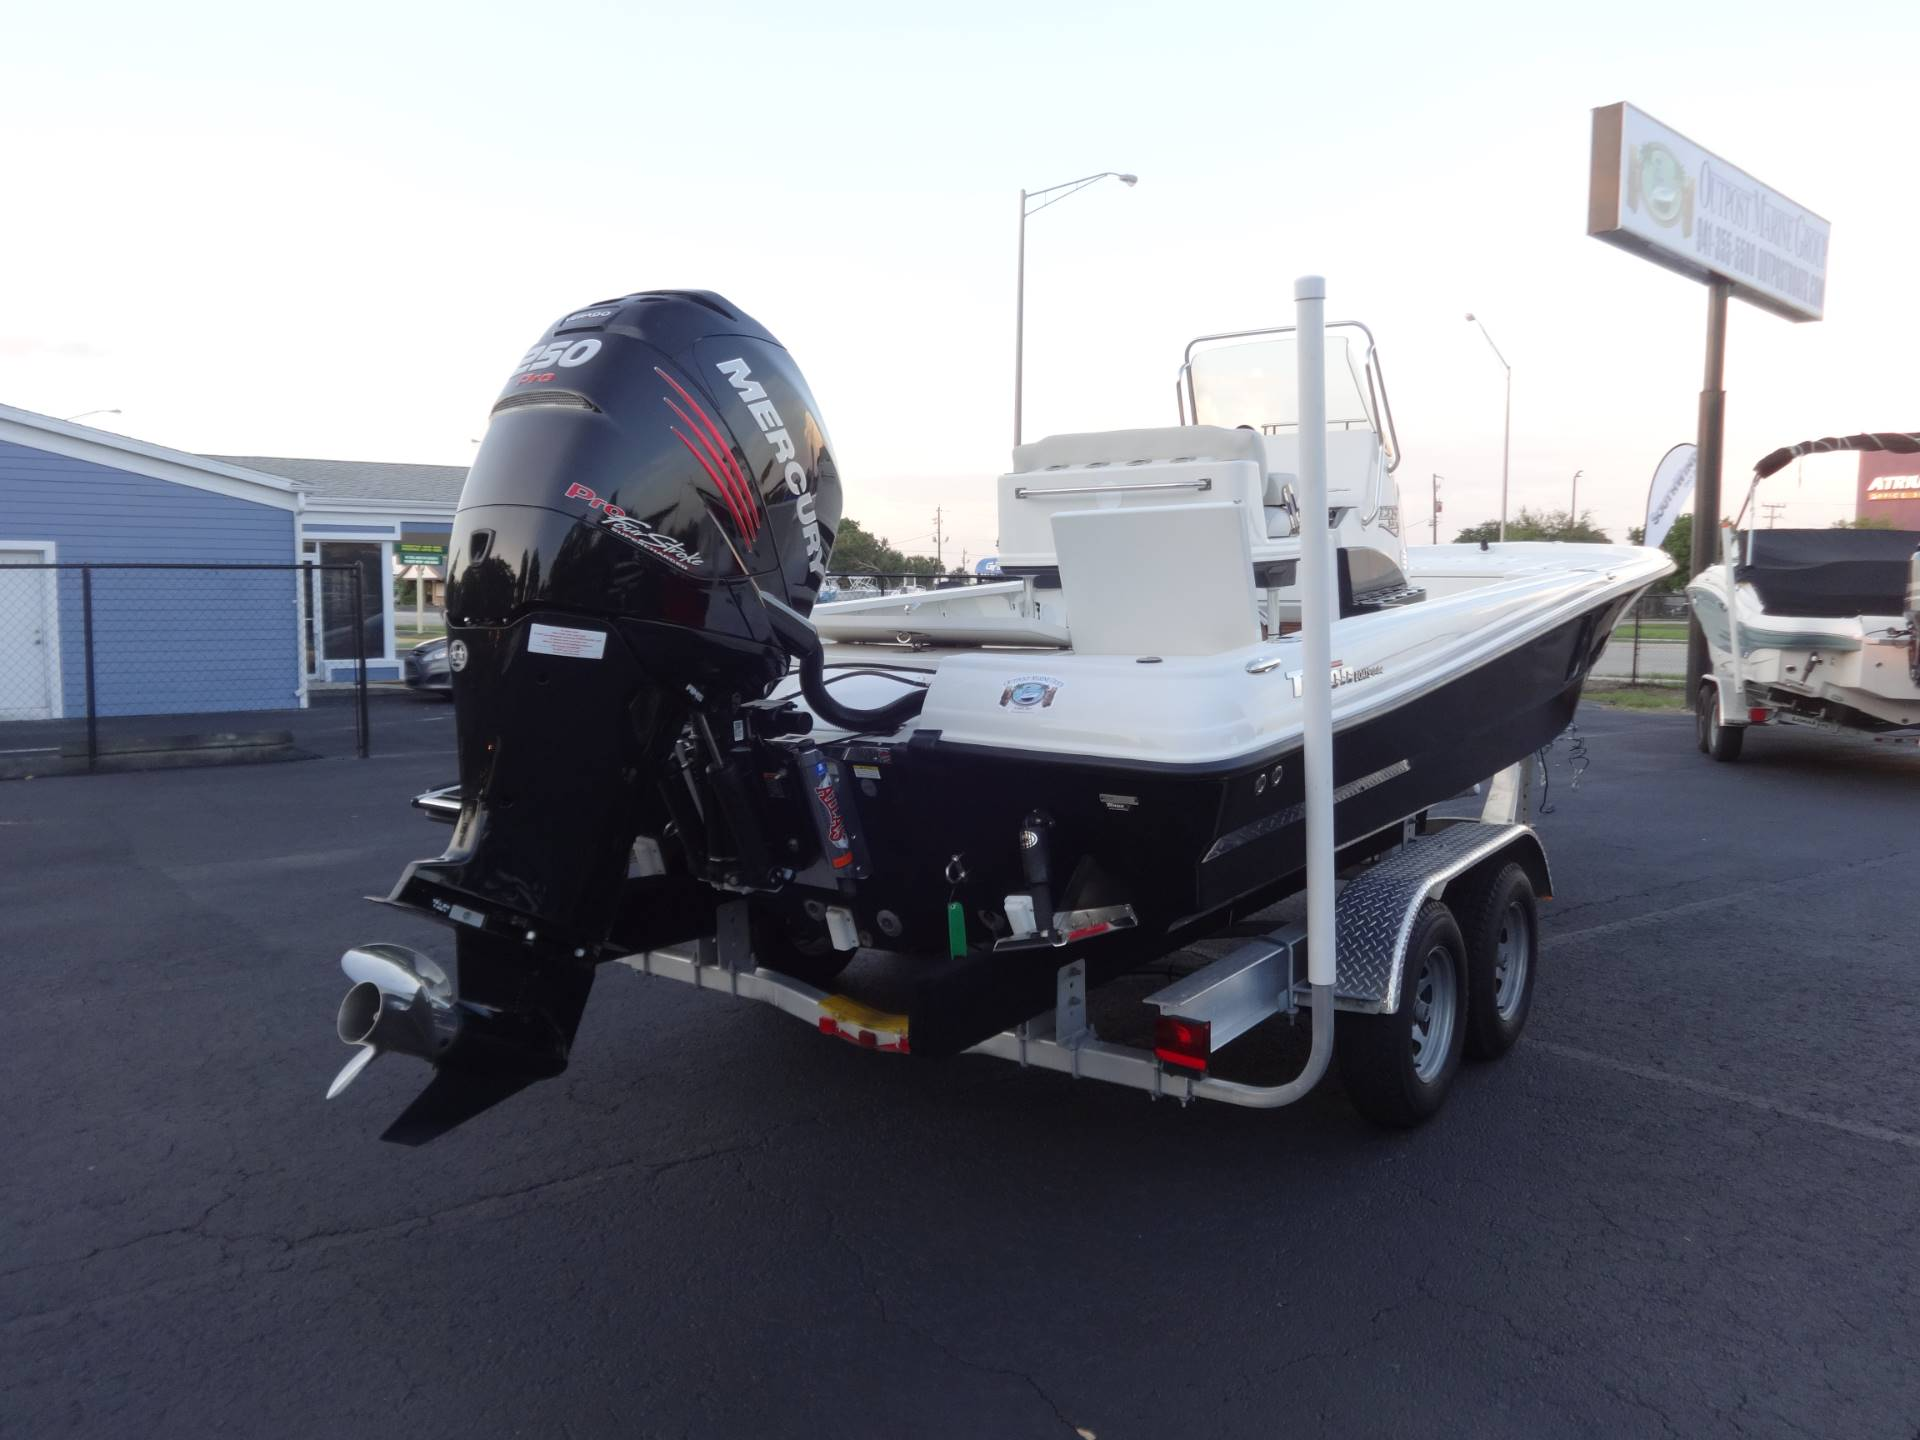 2018 Triton 220 LTS PRO in Holiday, Florida - Photo 12